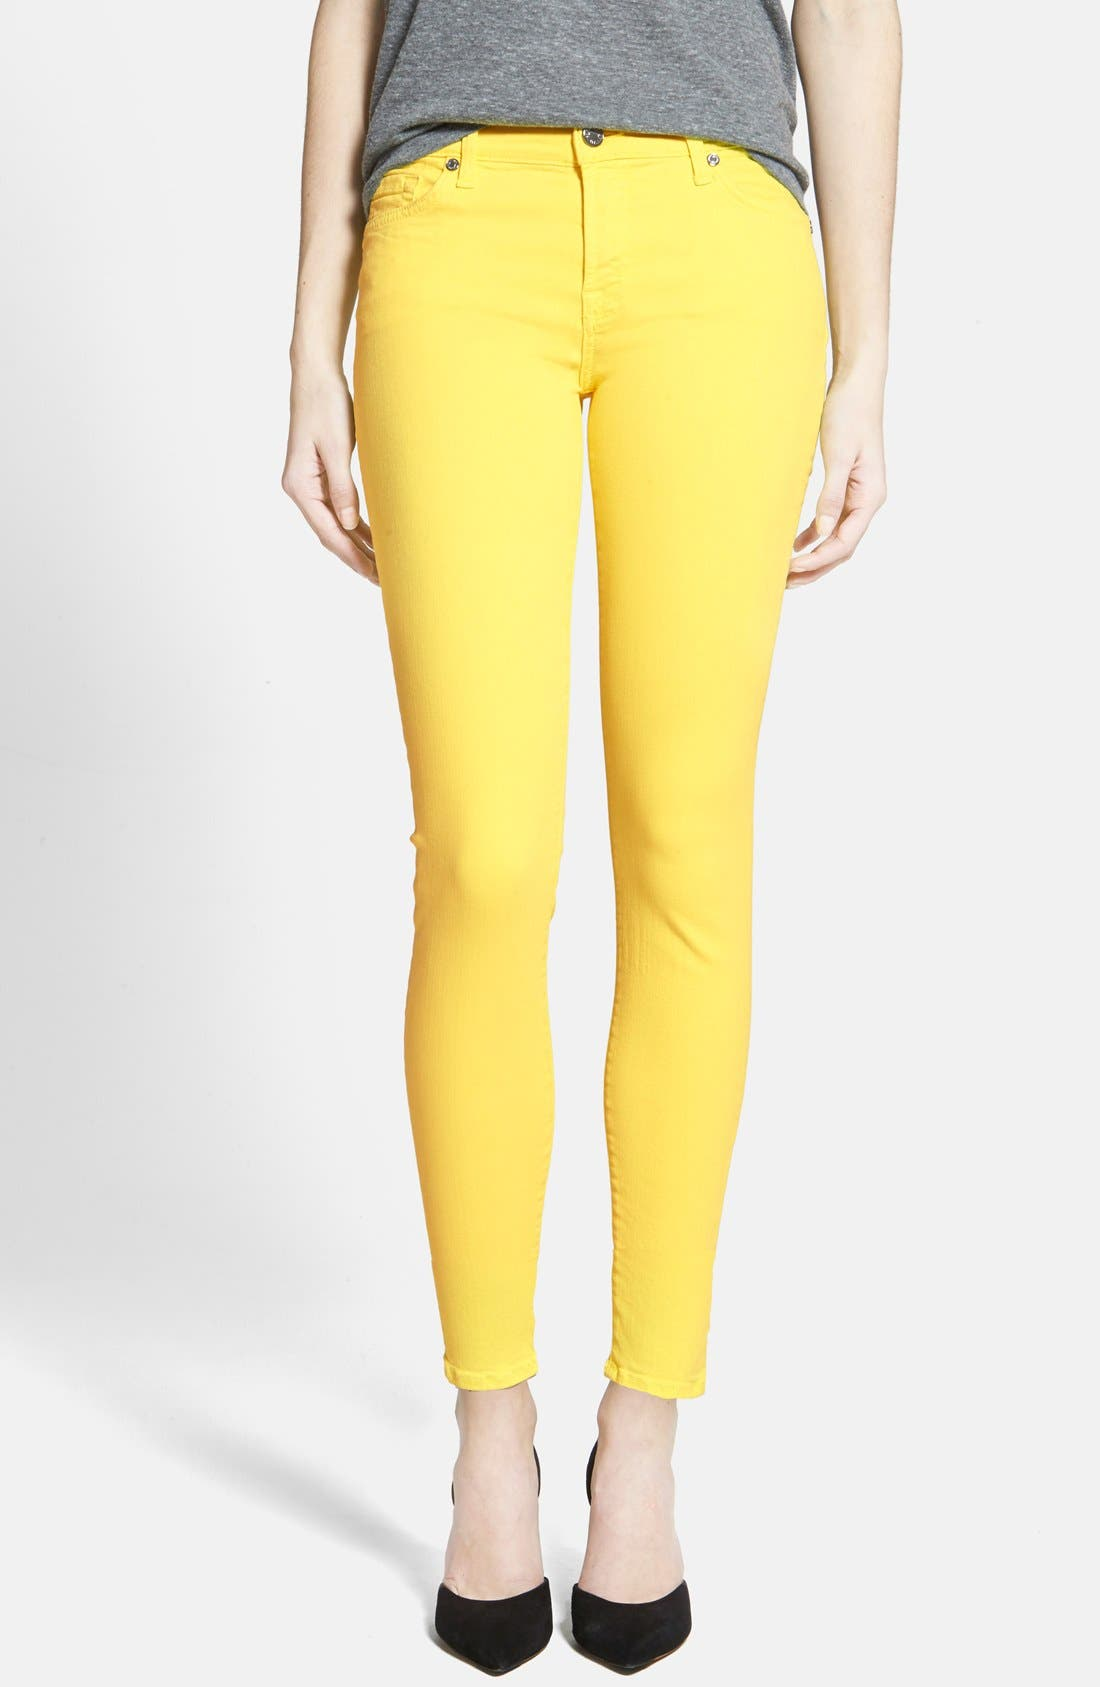 Alternate Image 1 Selected - 7 For All Mankind® 'The Ankle Skinny' Jeans (Blazing Yellow)